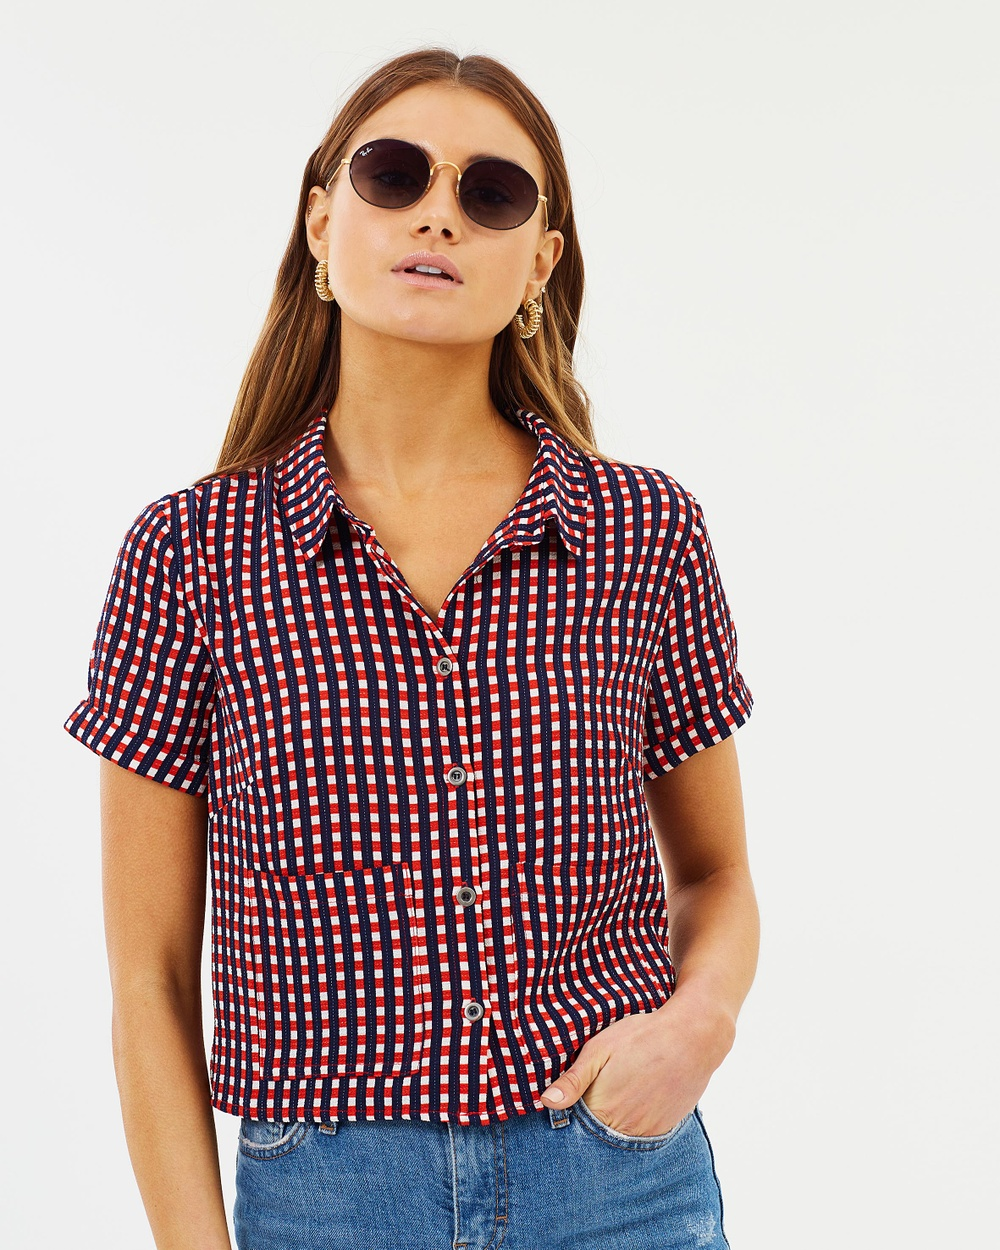 Dazie Great Divisions Cropped Shirt Cropped tops Red & Navy Check Great Divisions Cropped Shirt